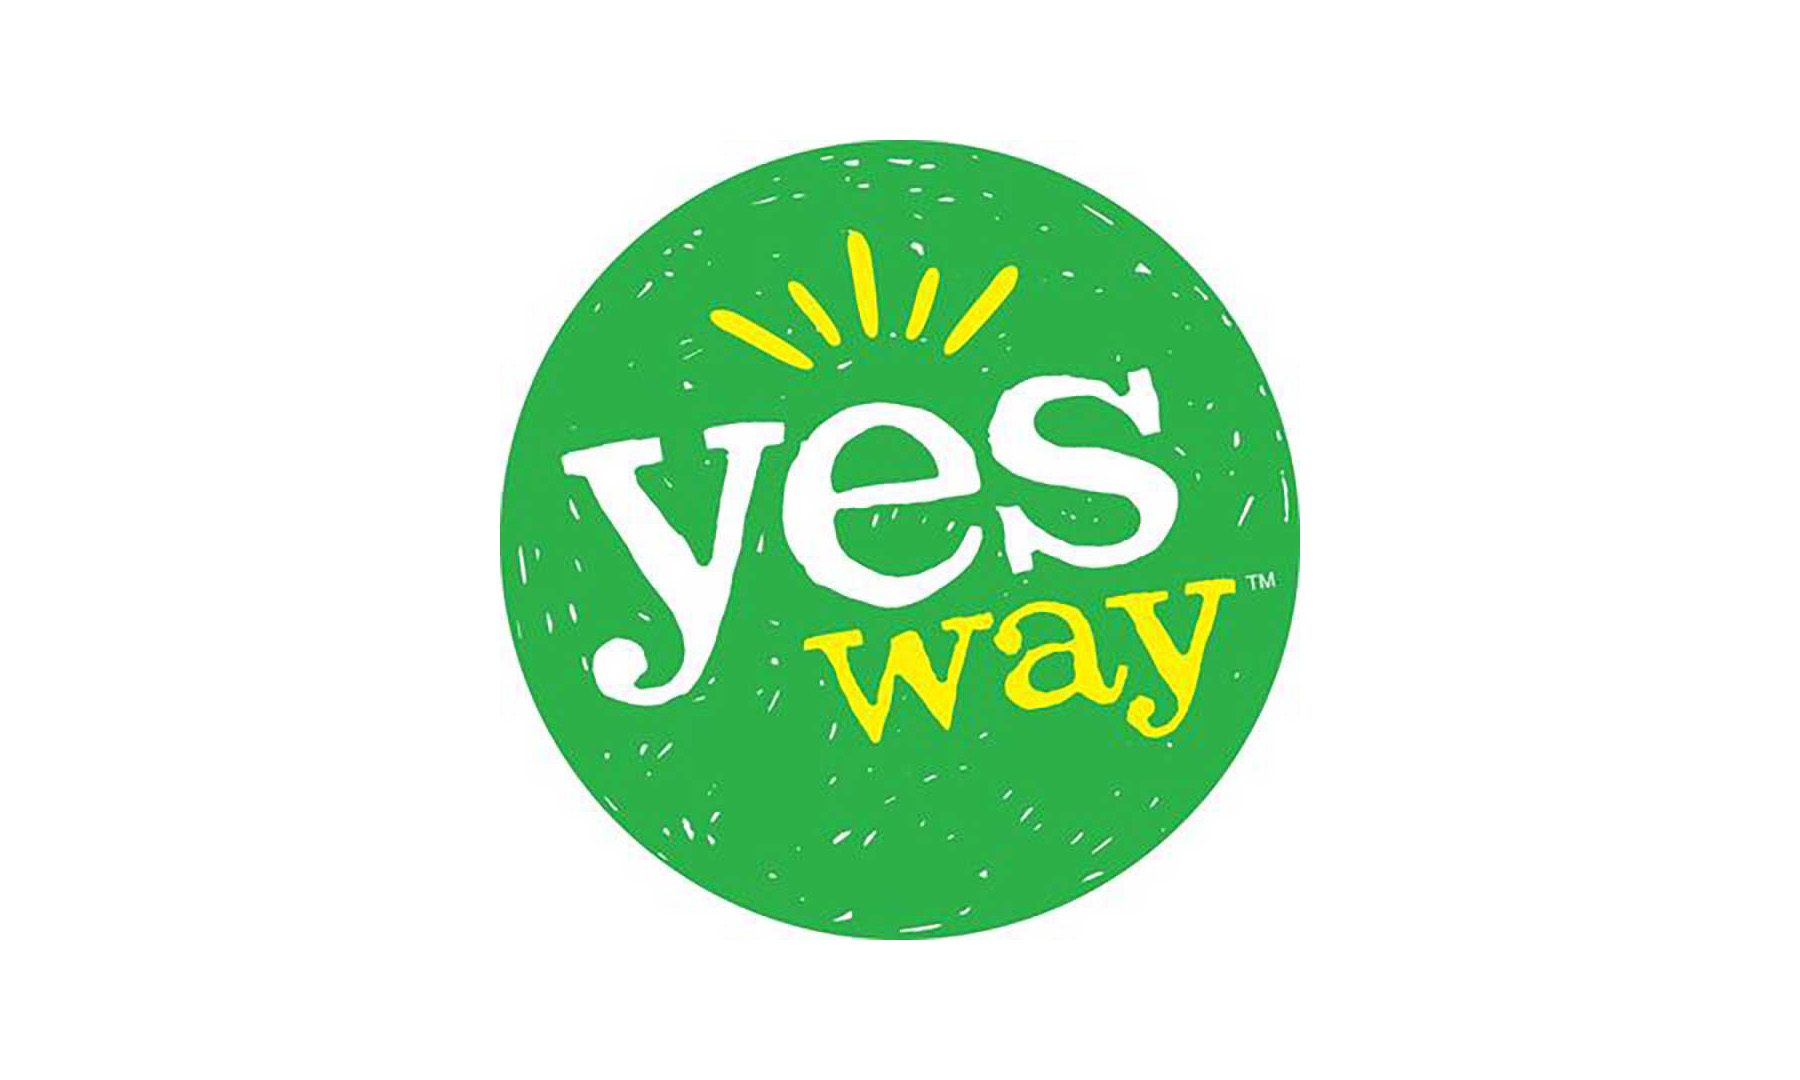 Yesway logo convenience store chain